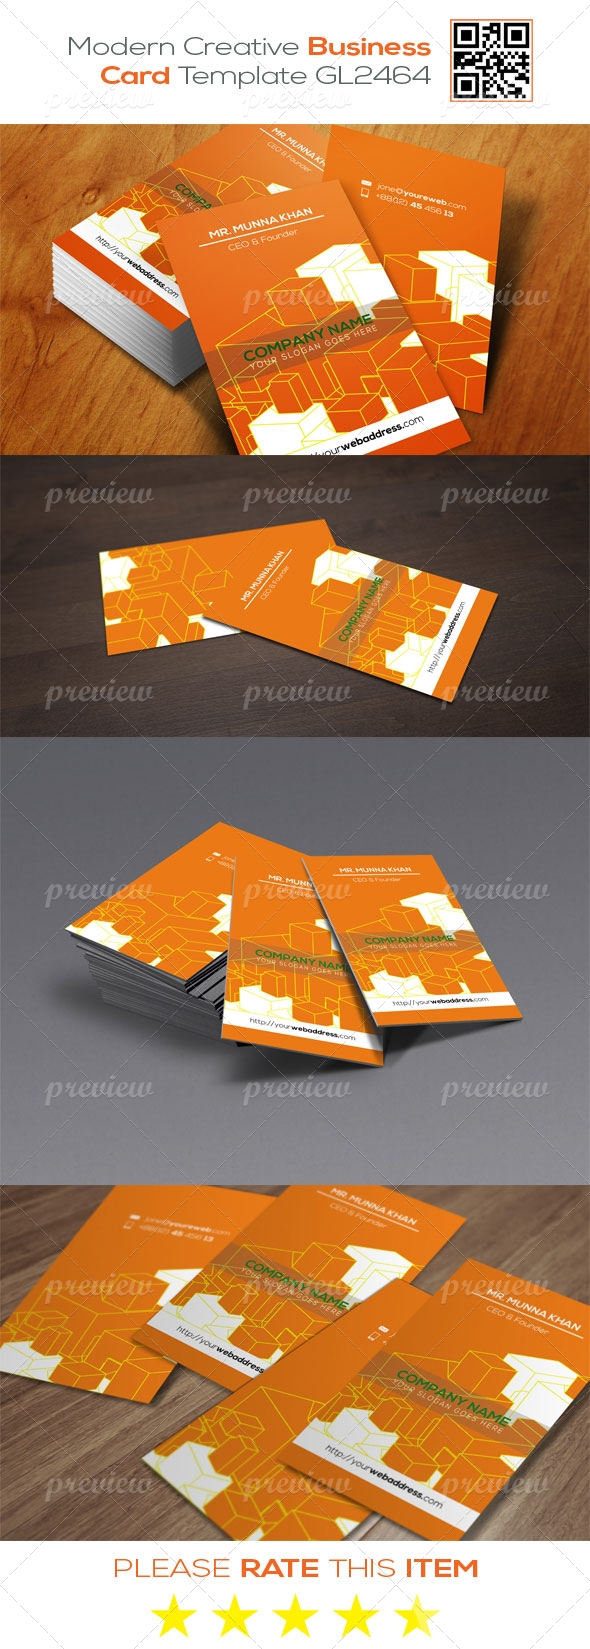 Modern Creative Business Card Template GL2464